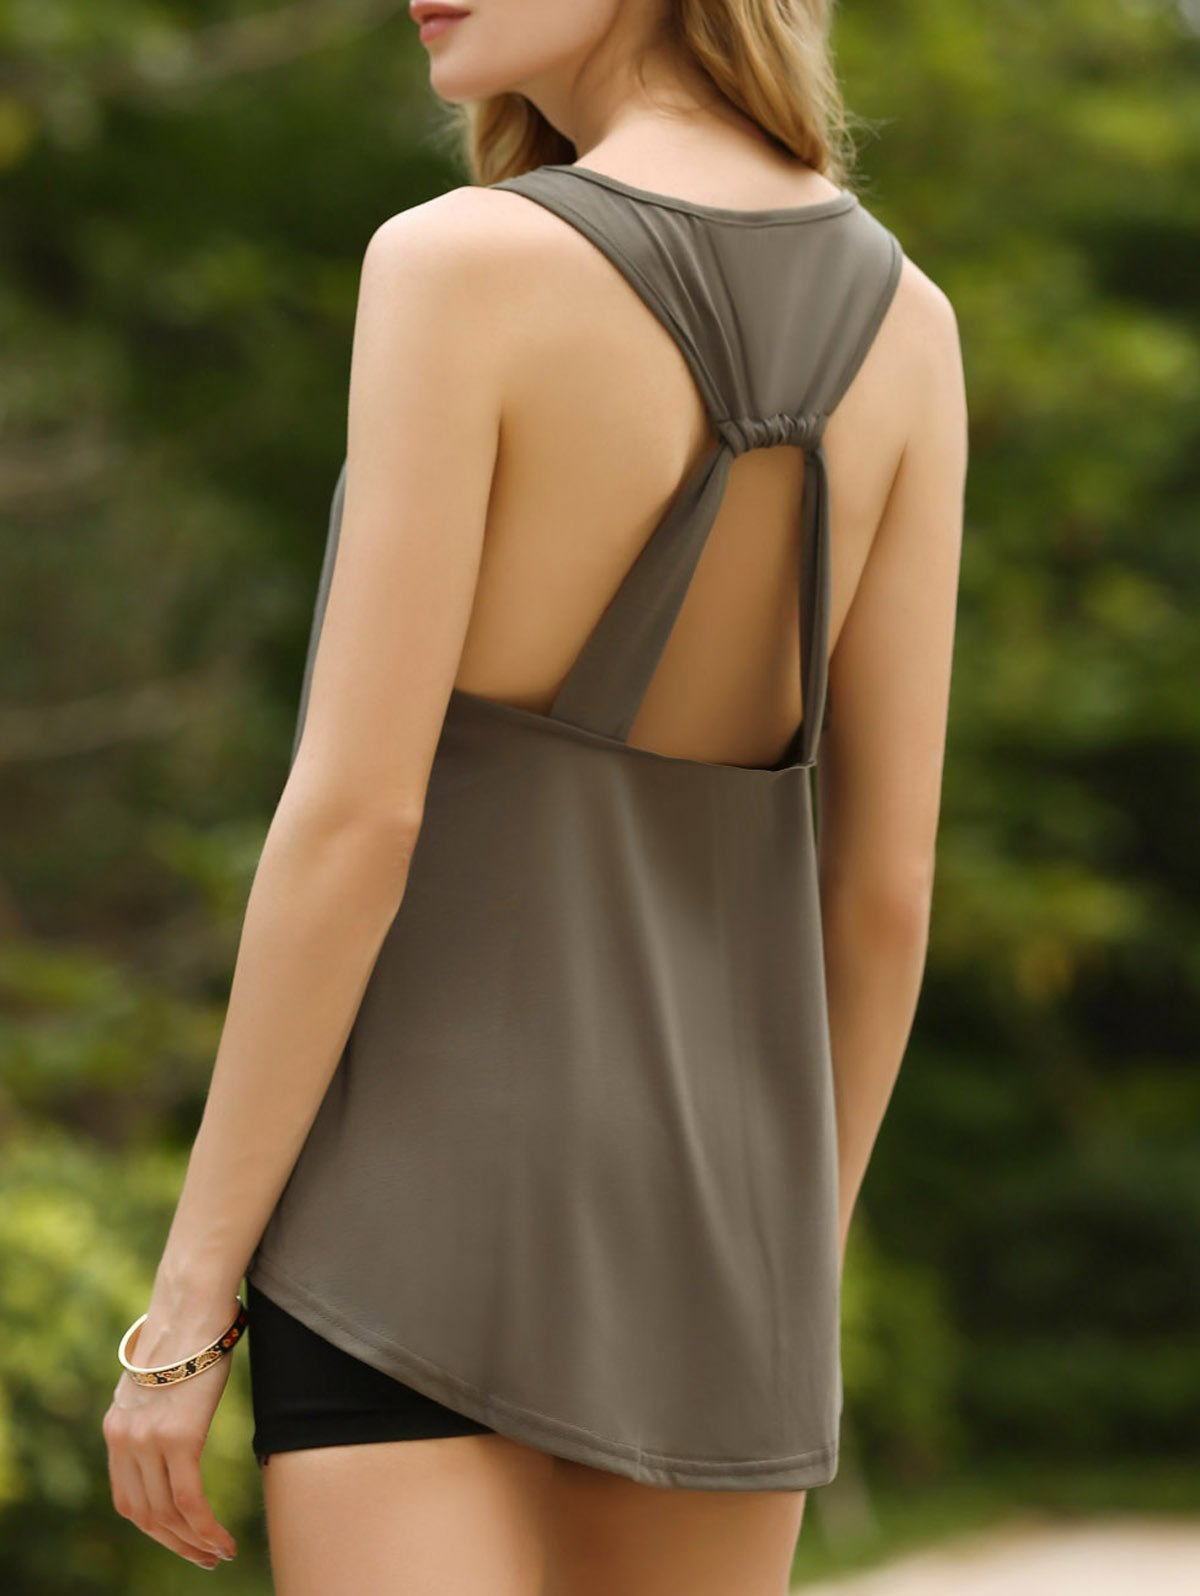 Chic Women's U-Neck Open Back Tank Top - ARMY GREEN M